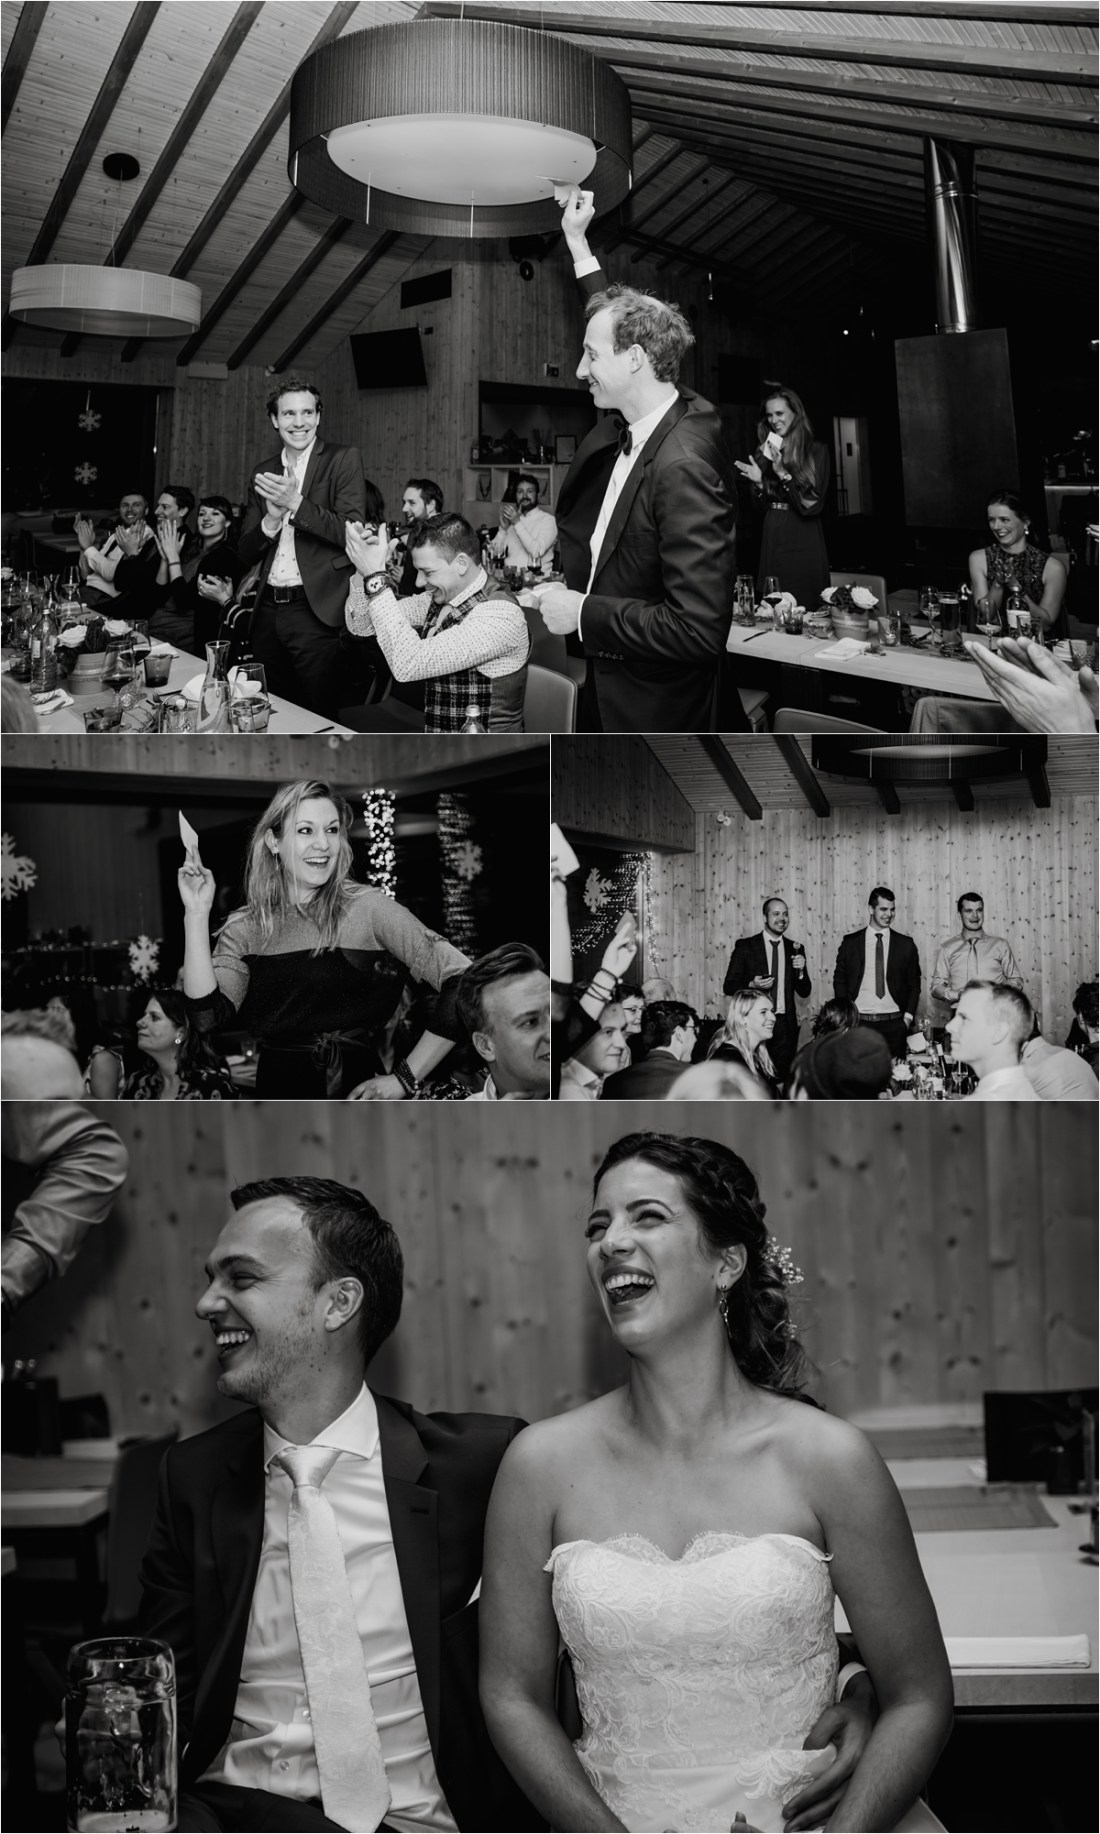 Games during the wedding breakfast at the Schmiedhofalm by Wild Connections Photography